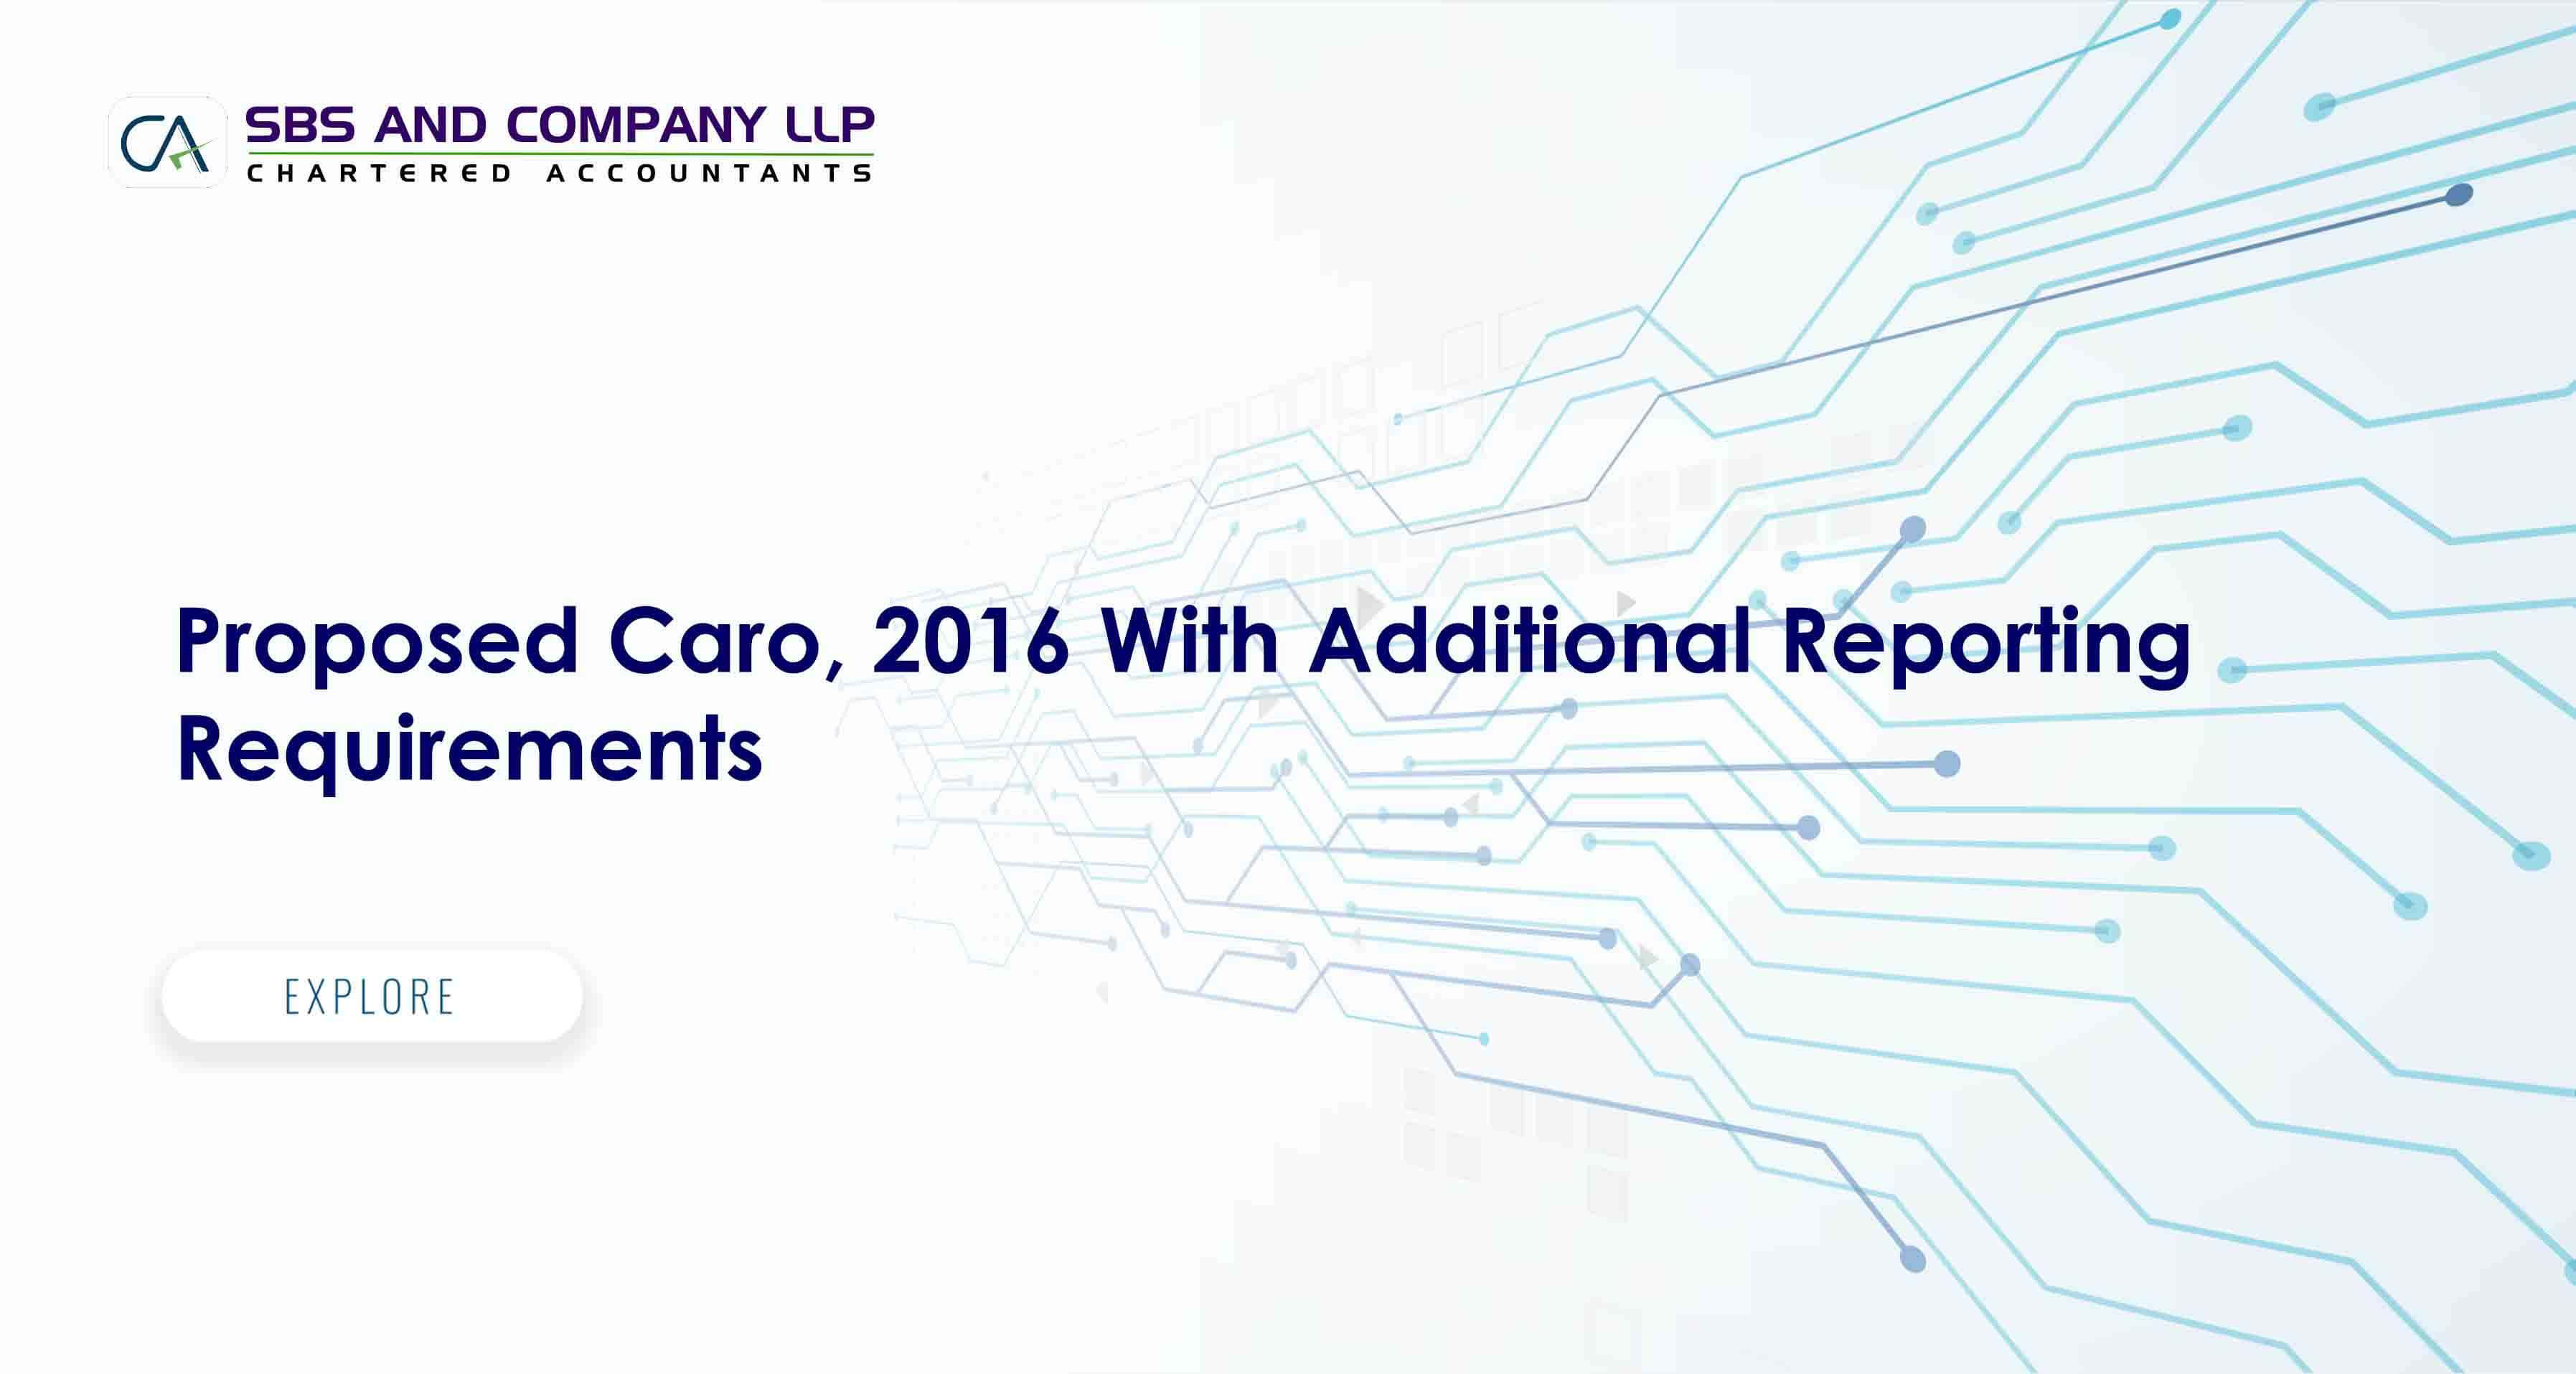 Proposed Caro, 2016 With Additional Reporting Requirements